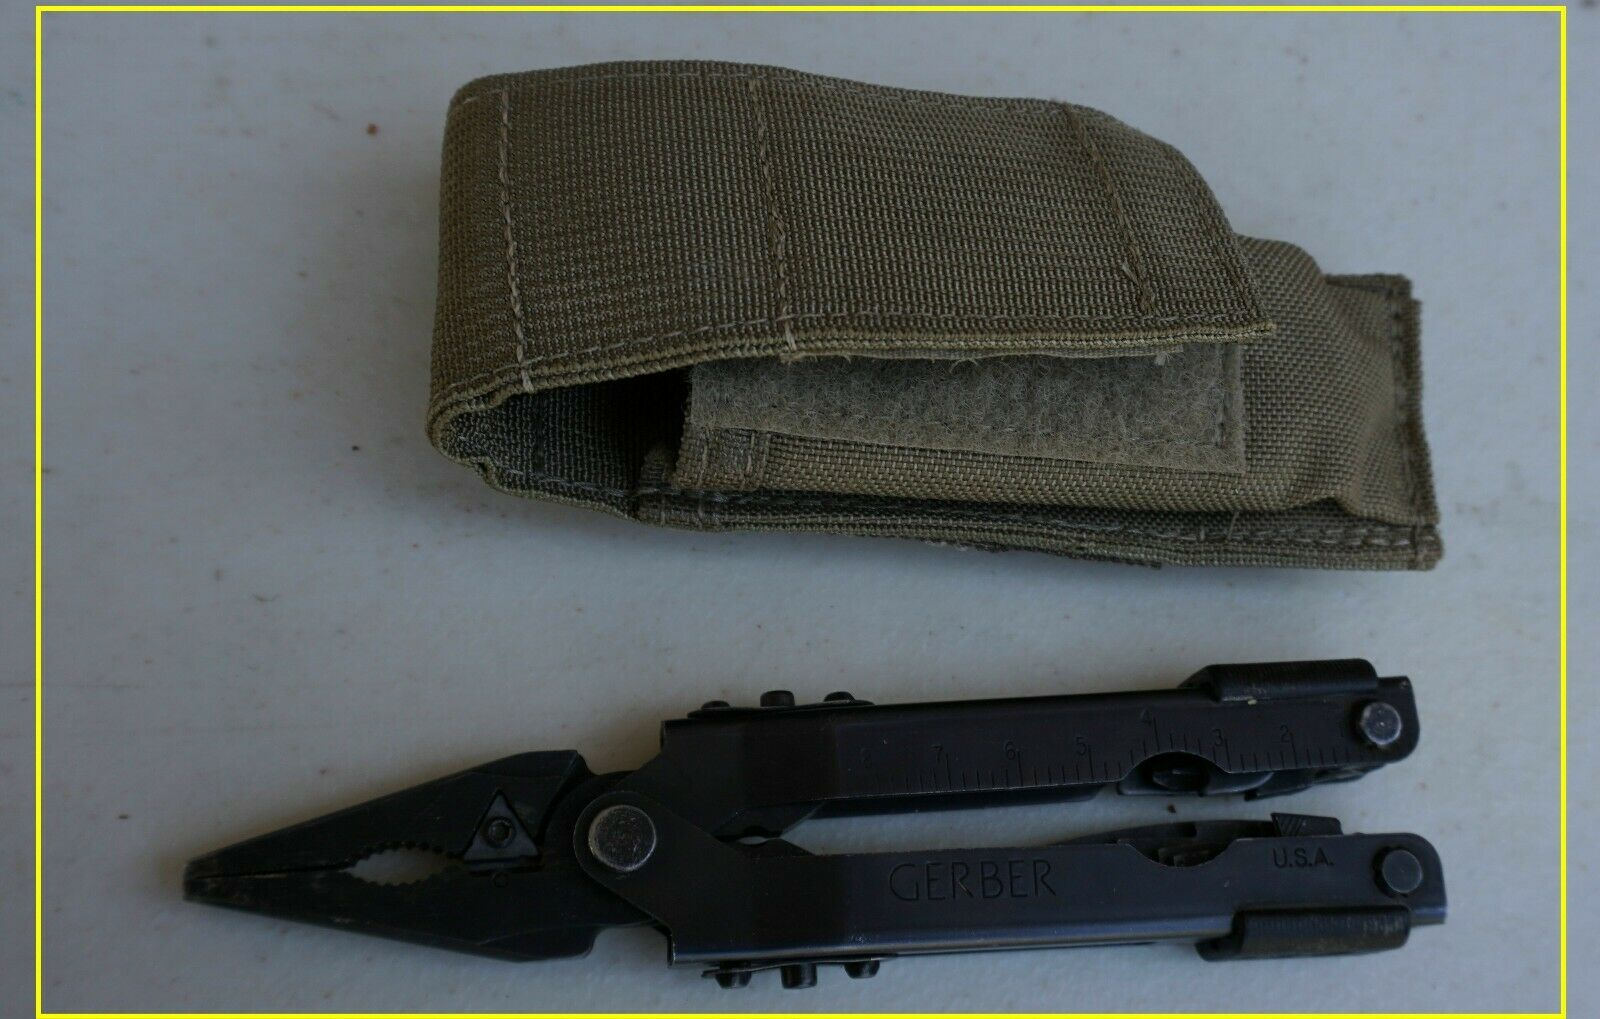 Lot  of 2 Army Gerber Multi tools, 1 excellent, 1 damaged  (LOC = k-5)  honest service